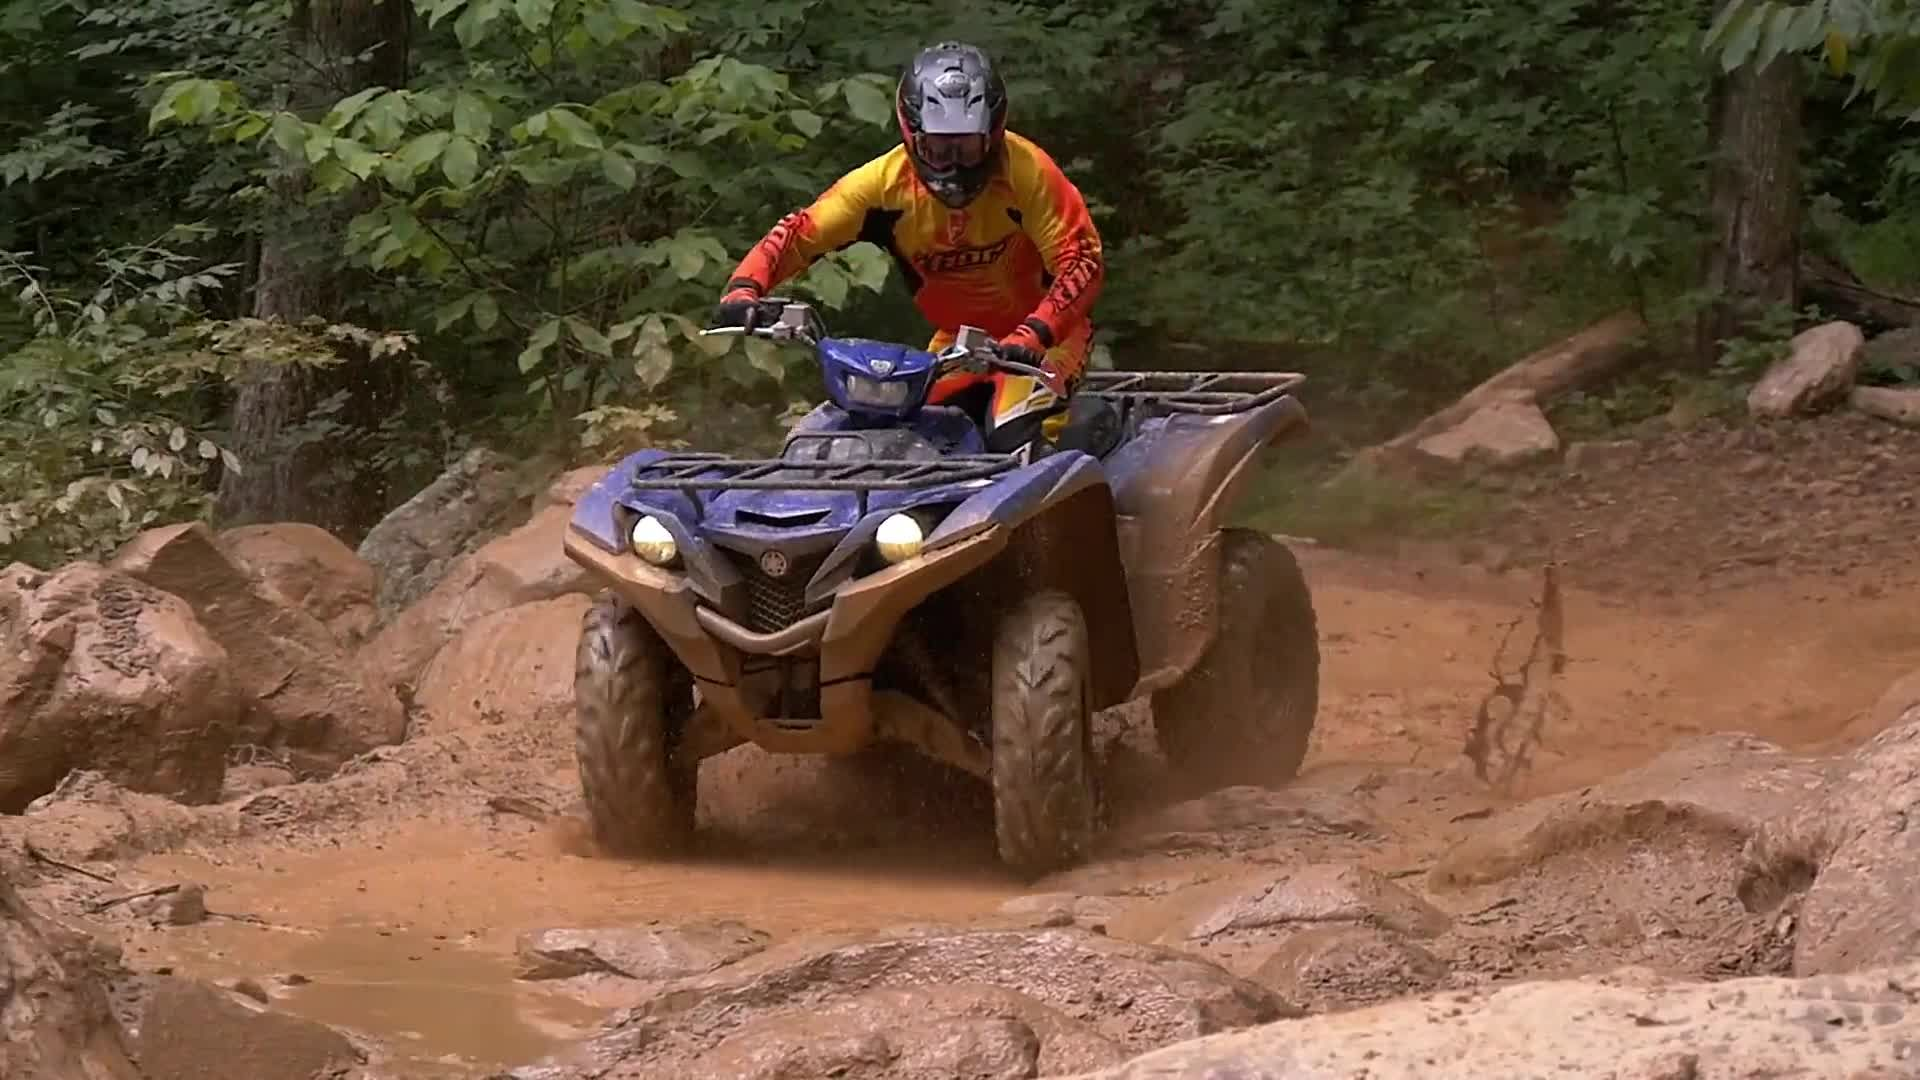 2016 Yamaha Grizzly 700 Eps 4x4 Atv Review Rider